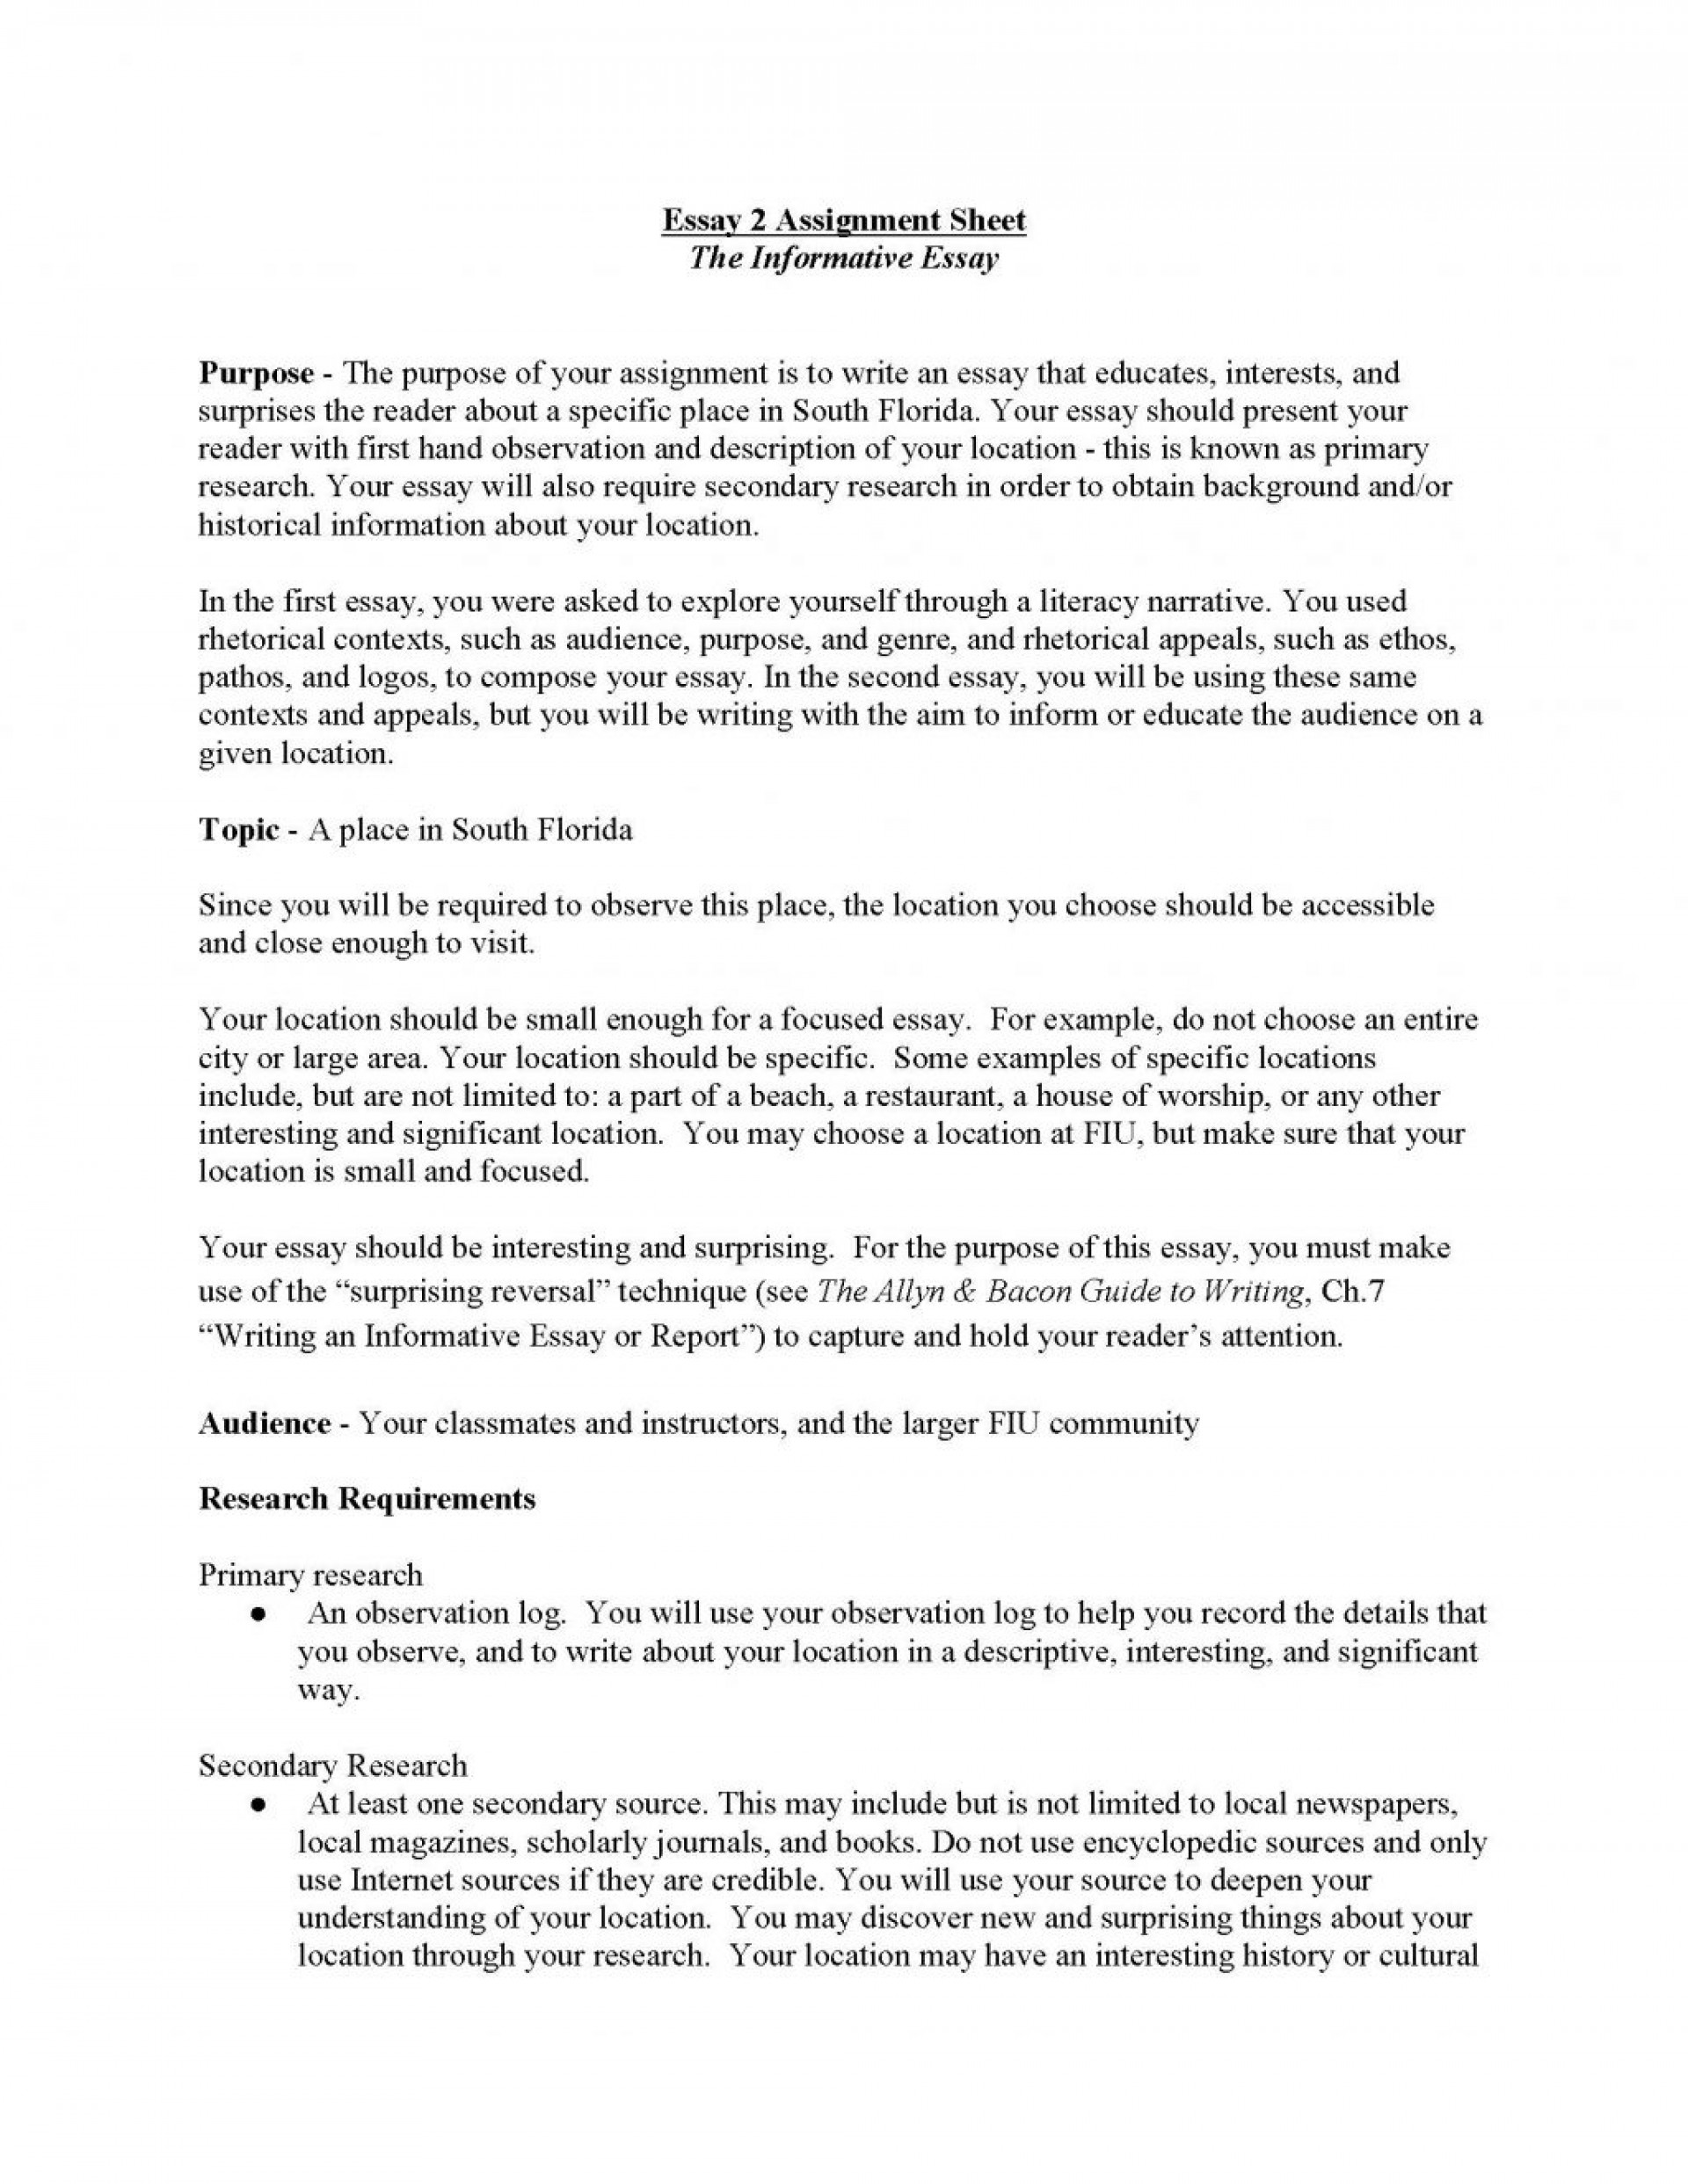 020 Research Paper Informative Essay Topics For High School Prompt 4th Grade Expository 6th College20 1024x1325 Excellent Students Topic 1920